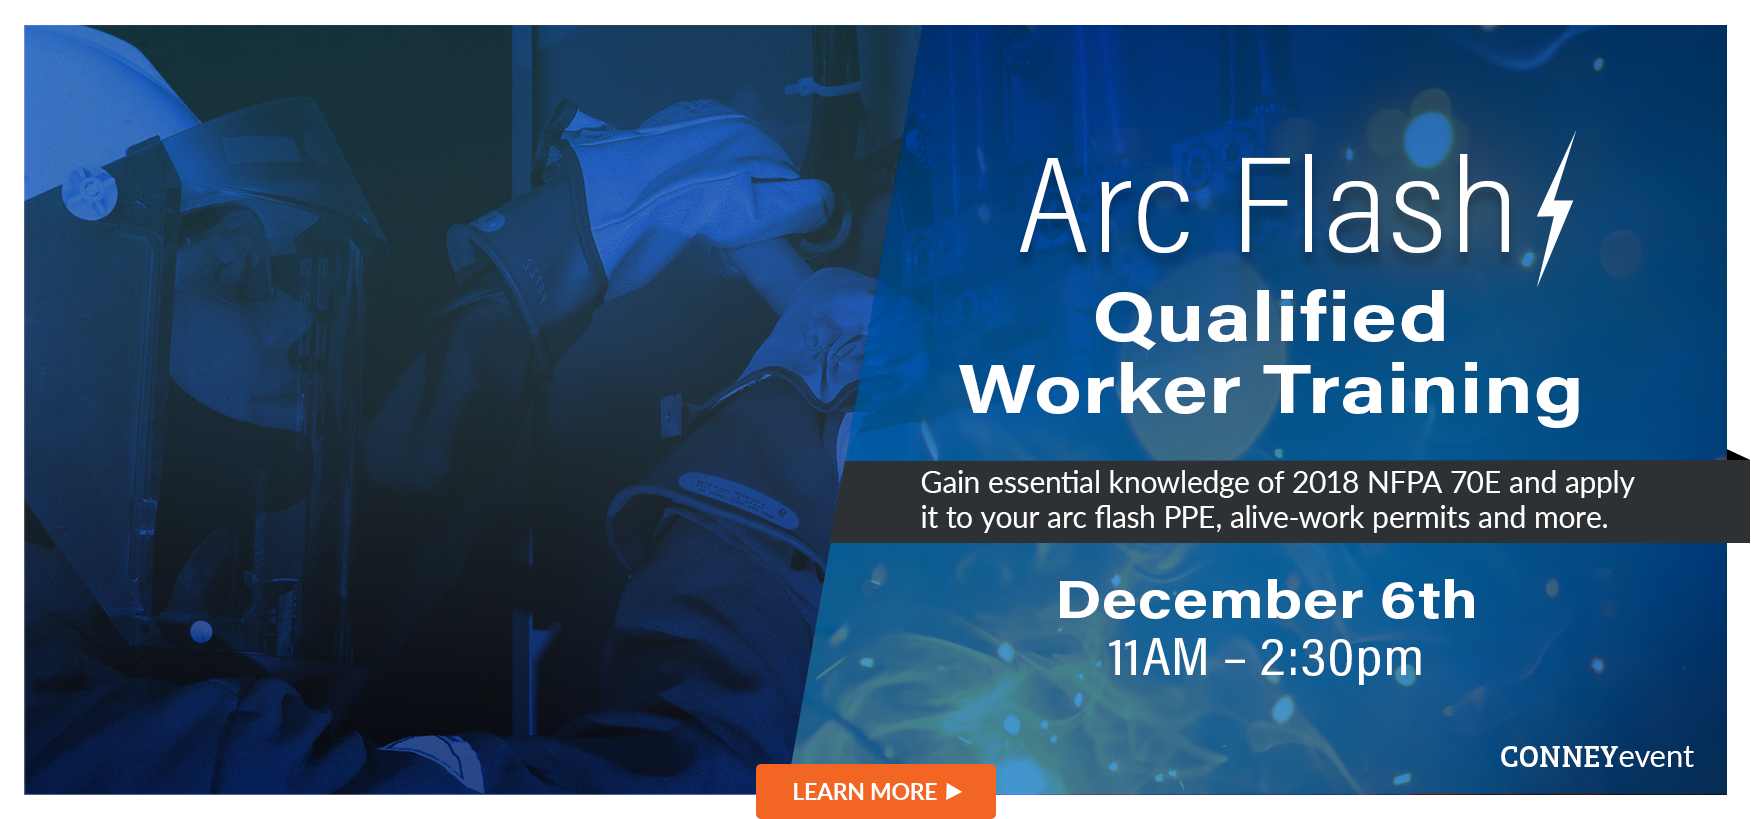 Arc Flash Qualified Workers Training, Dec. 6, 11AM